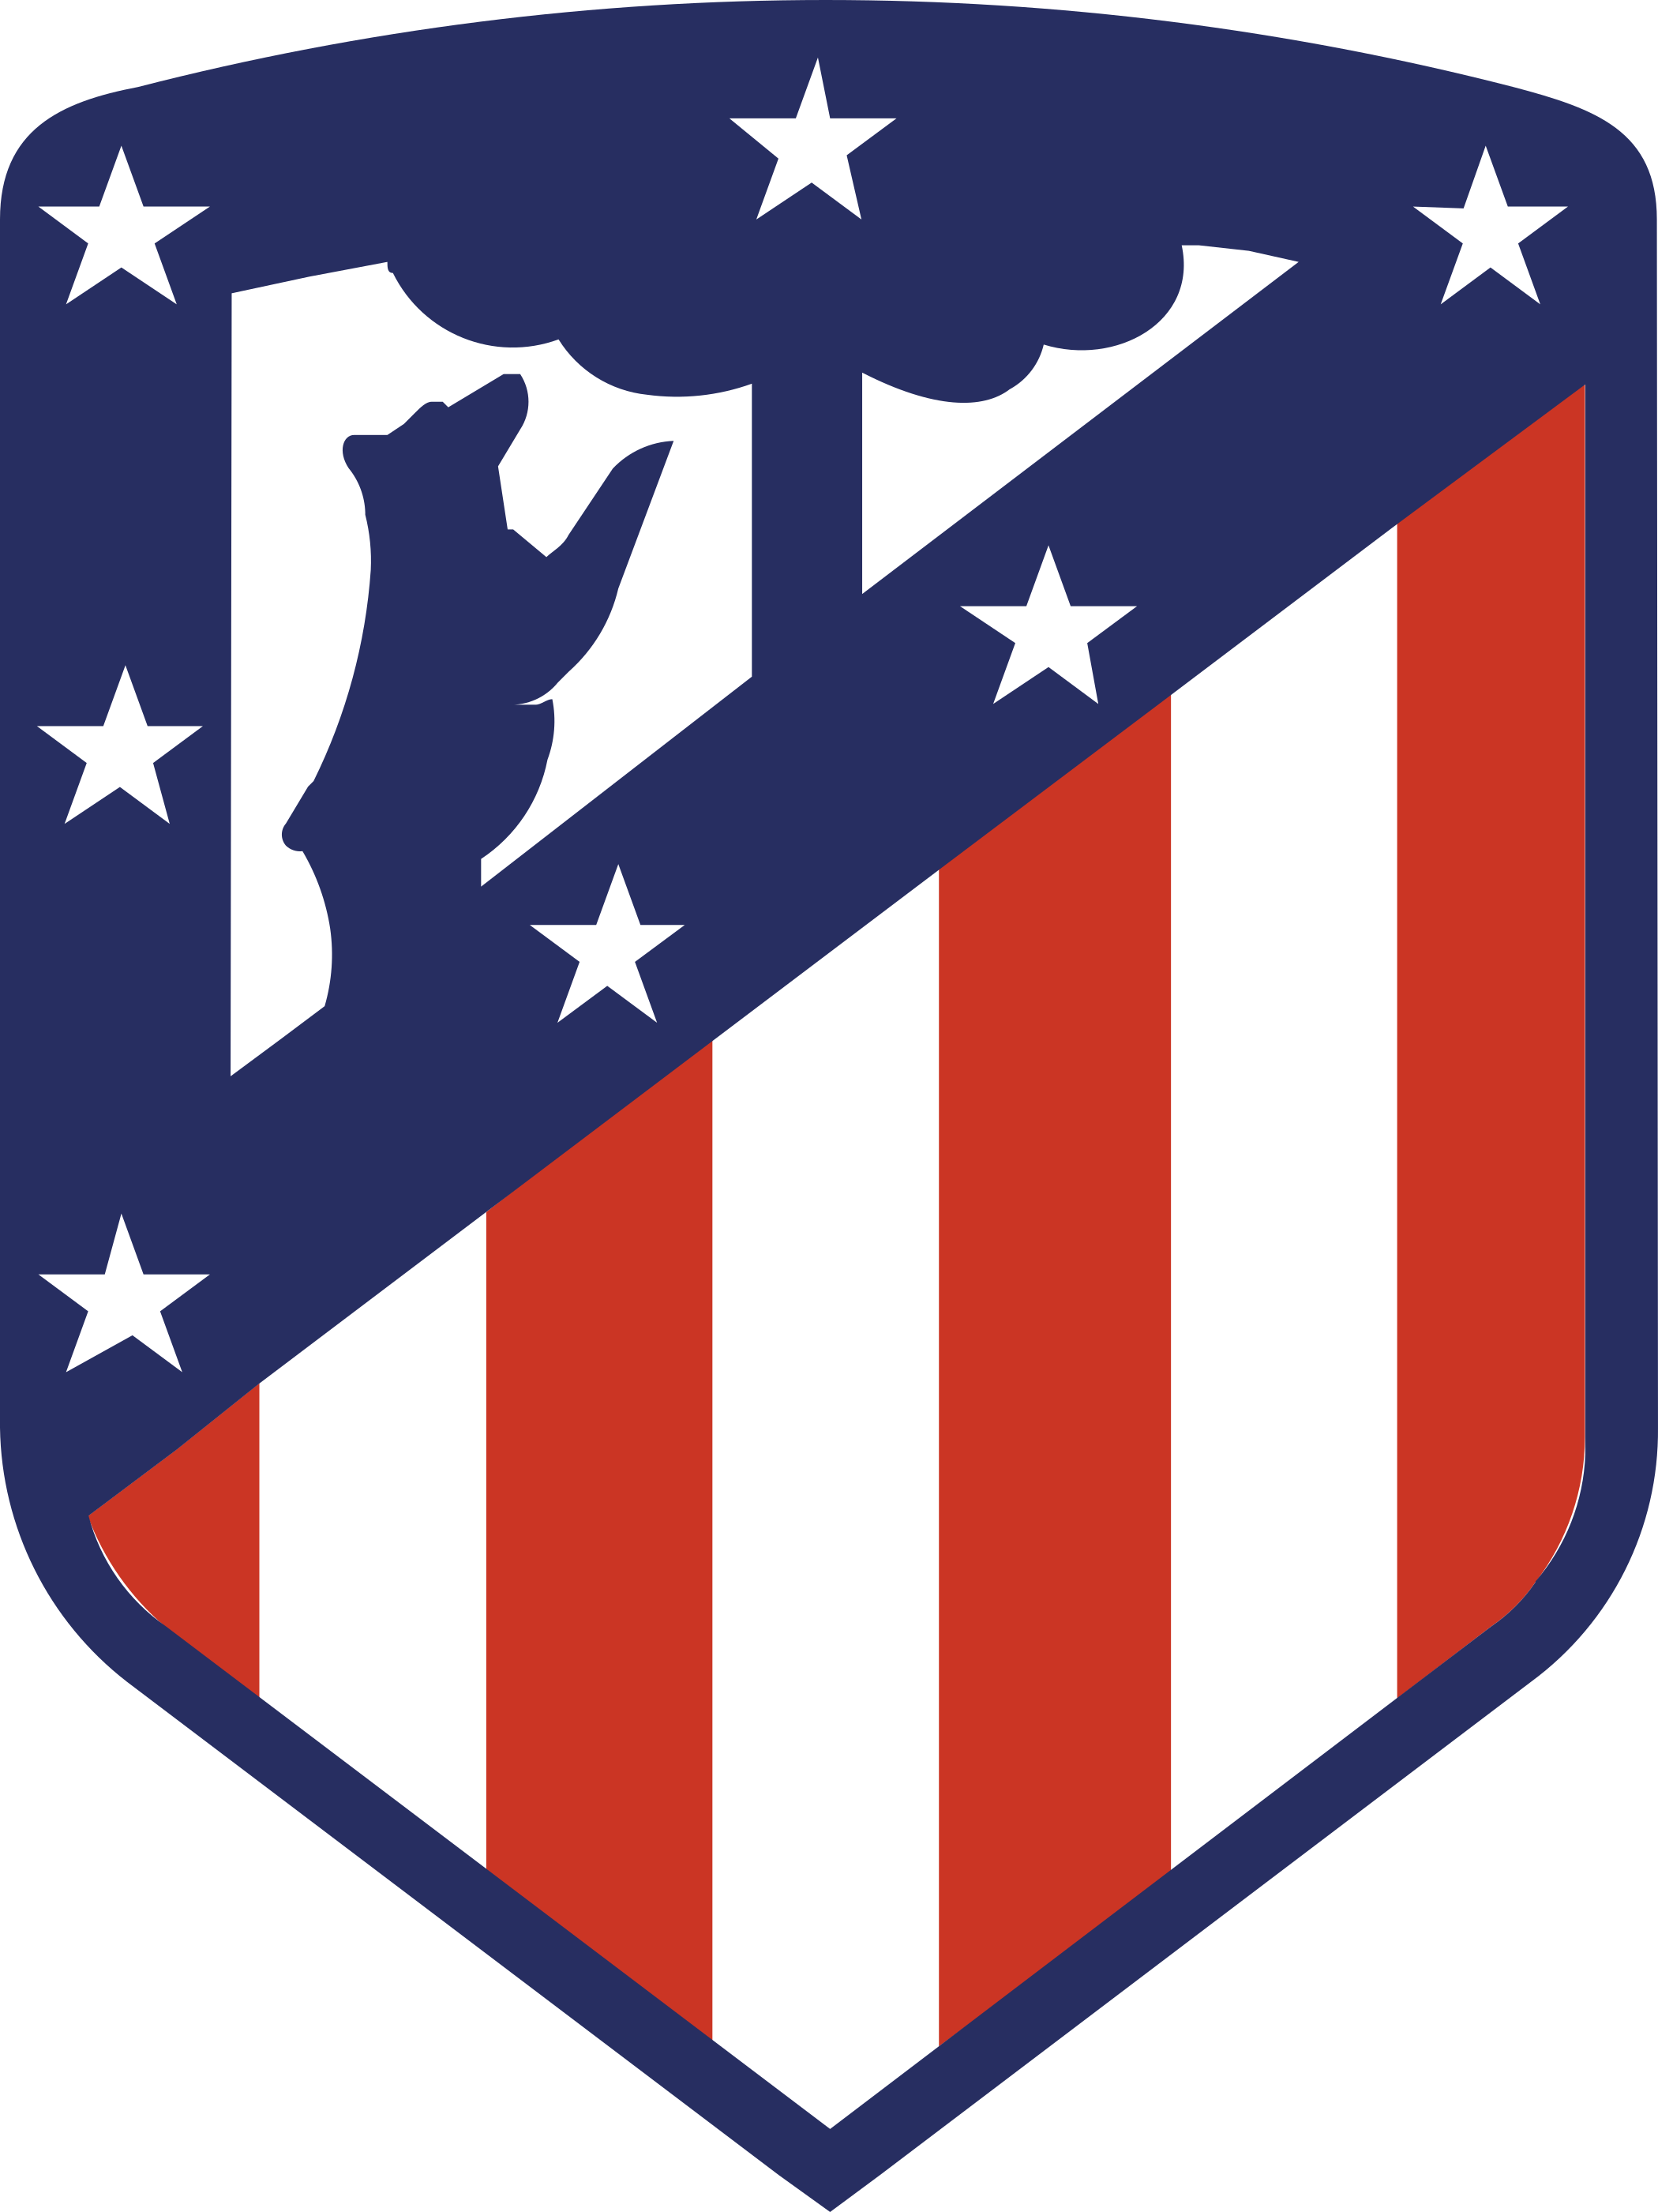 atletico-madrid-logo-1